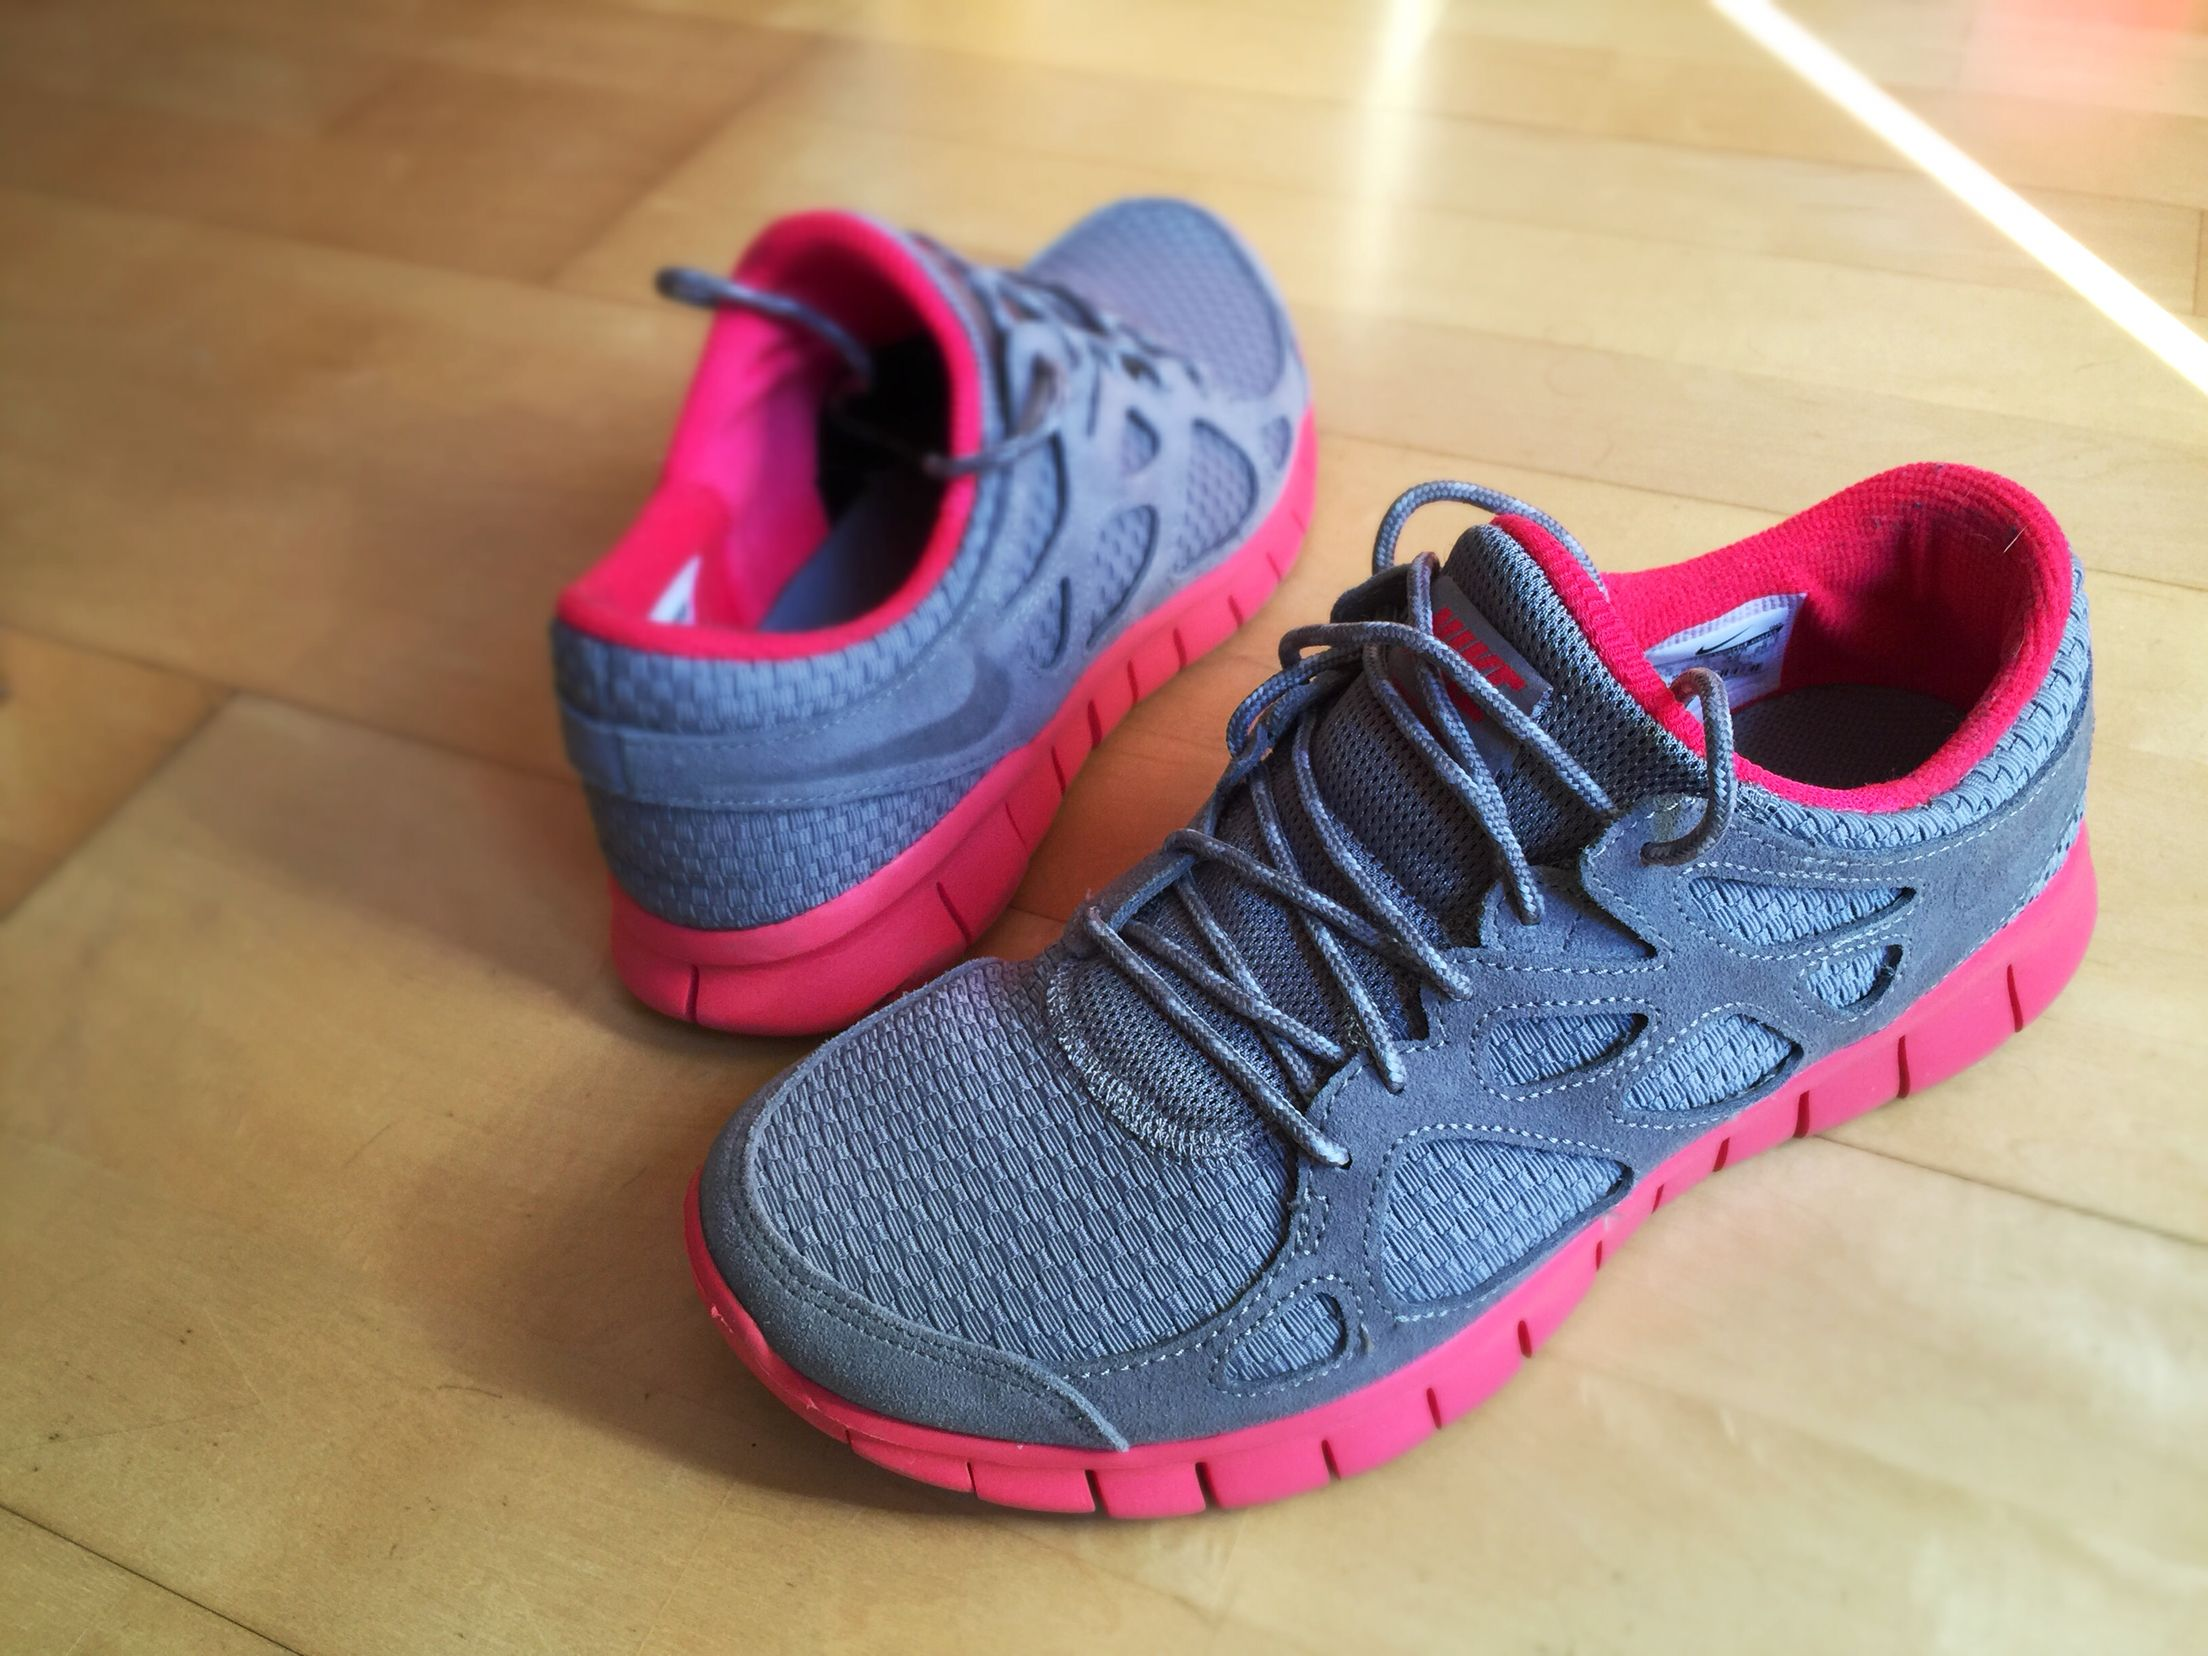 Nike Free love the color combination and the fabric texture!